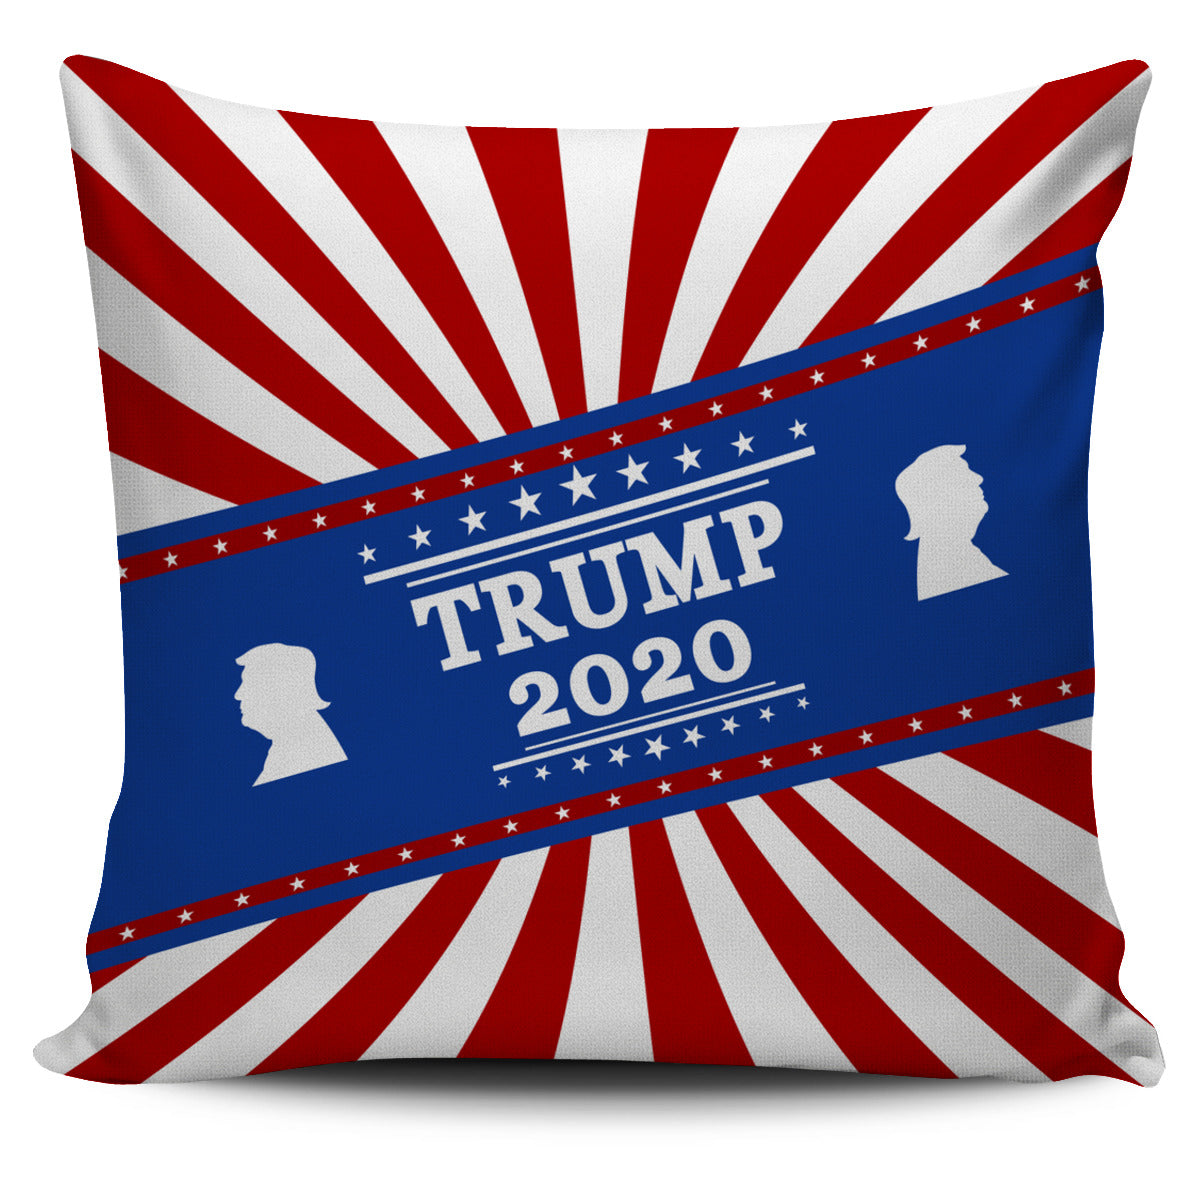 FREE TRUMP 2020 - Pillow Case